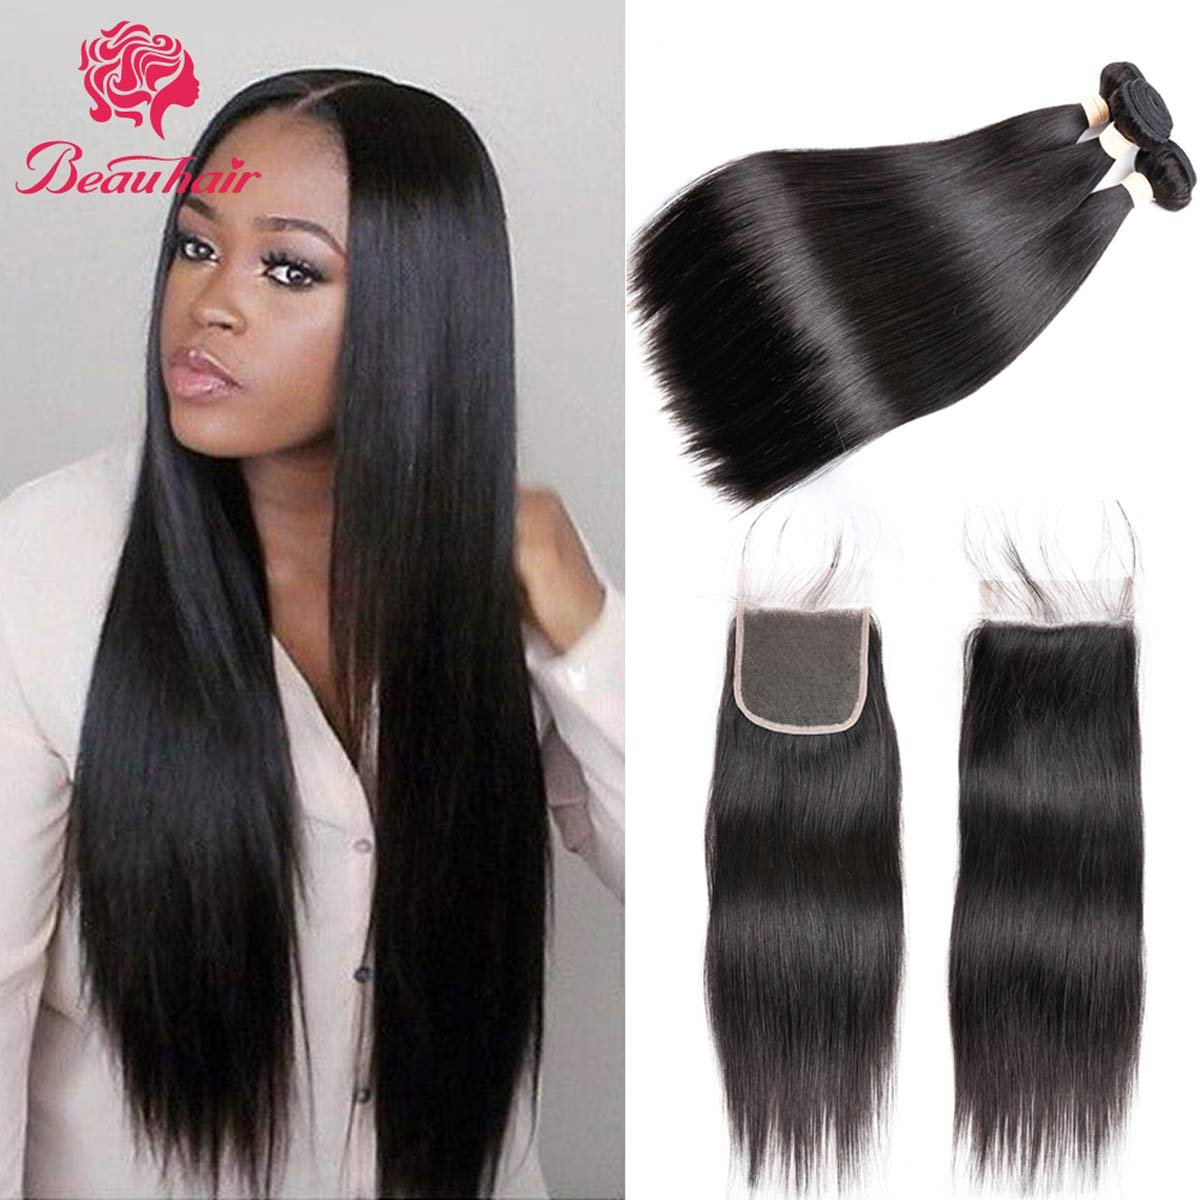 Beauhair Straight Hair Bundles with Closure (22 24 26+20 Closure) 100% Brazilian Straight Virgin Hair 3 Bundles with Lace Closure Free Part Human Hair Extensions Natural Black Color